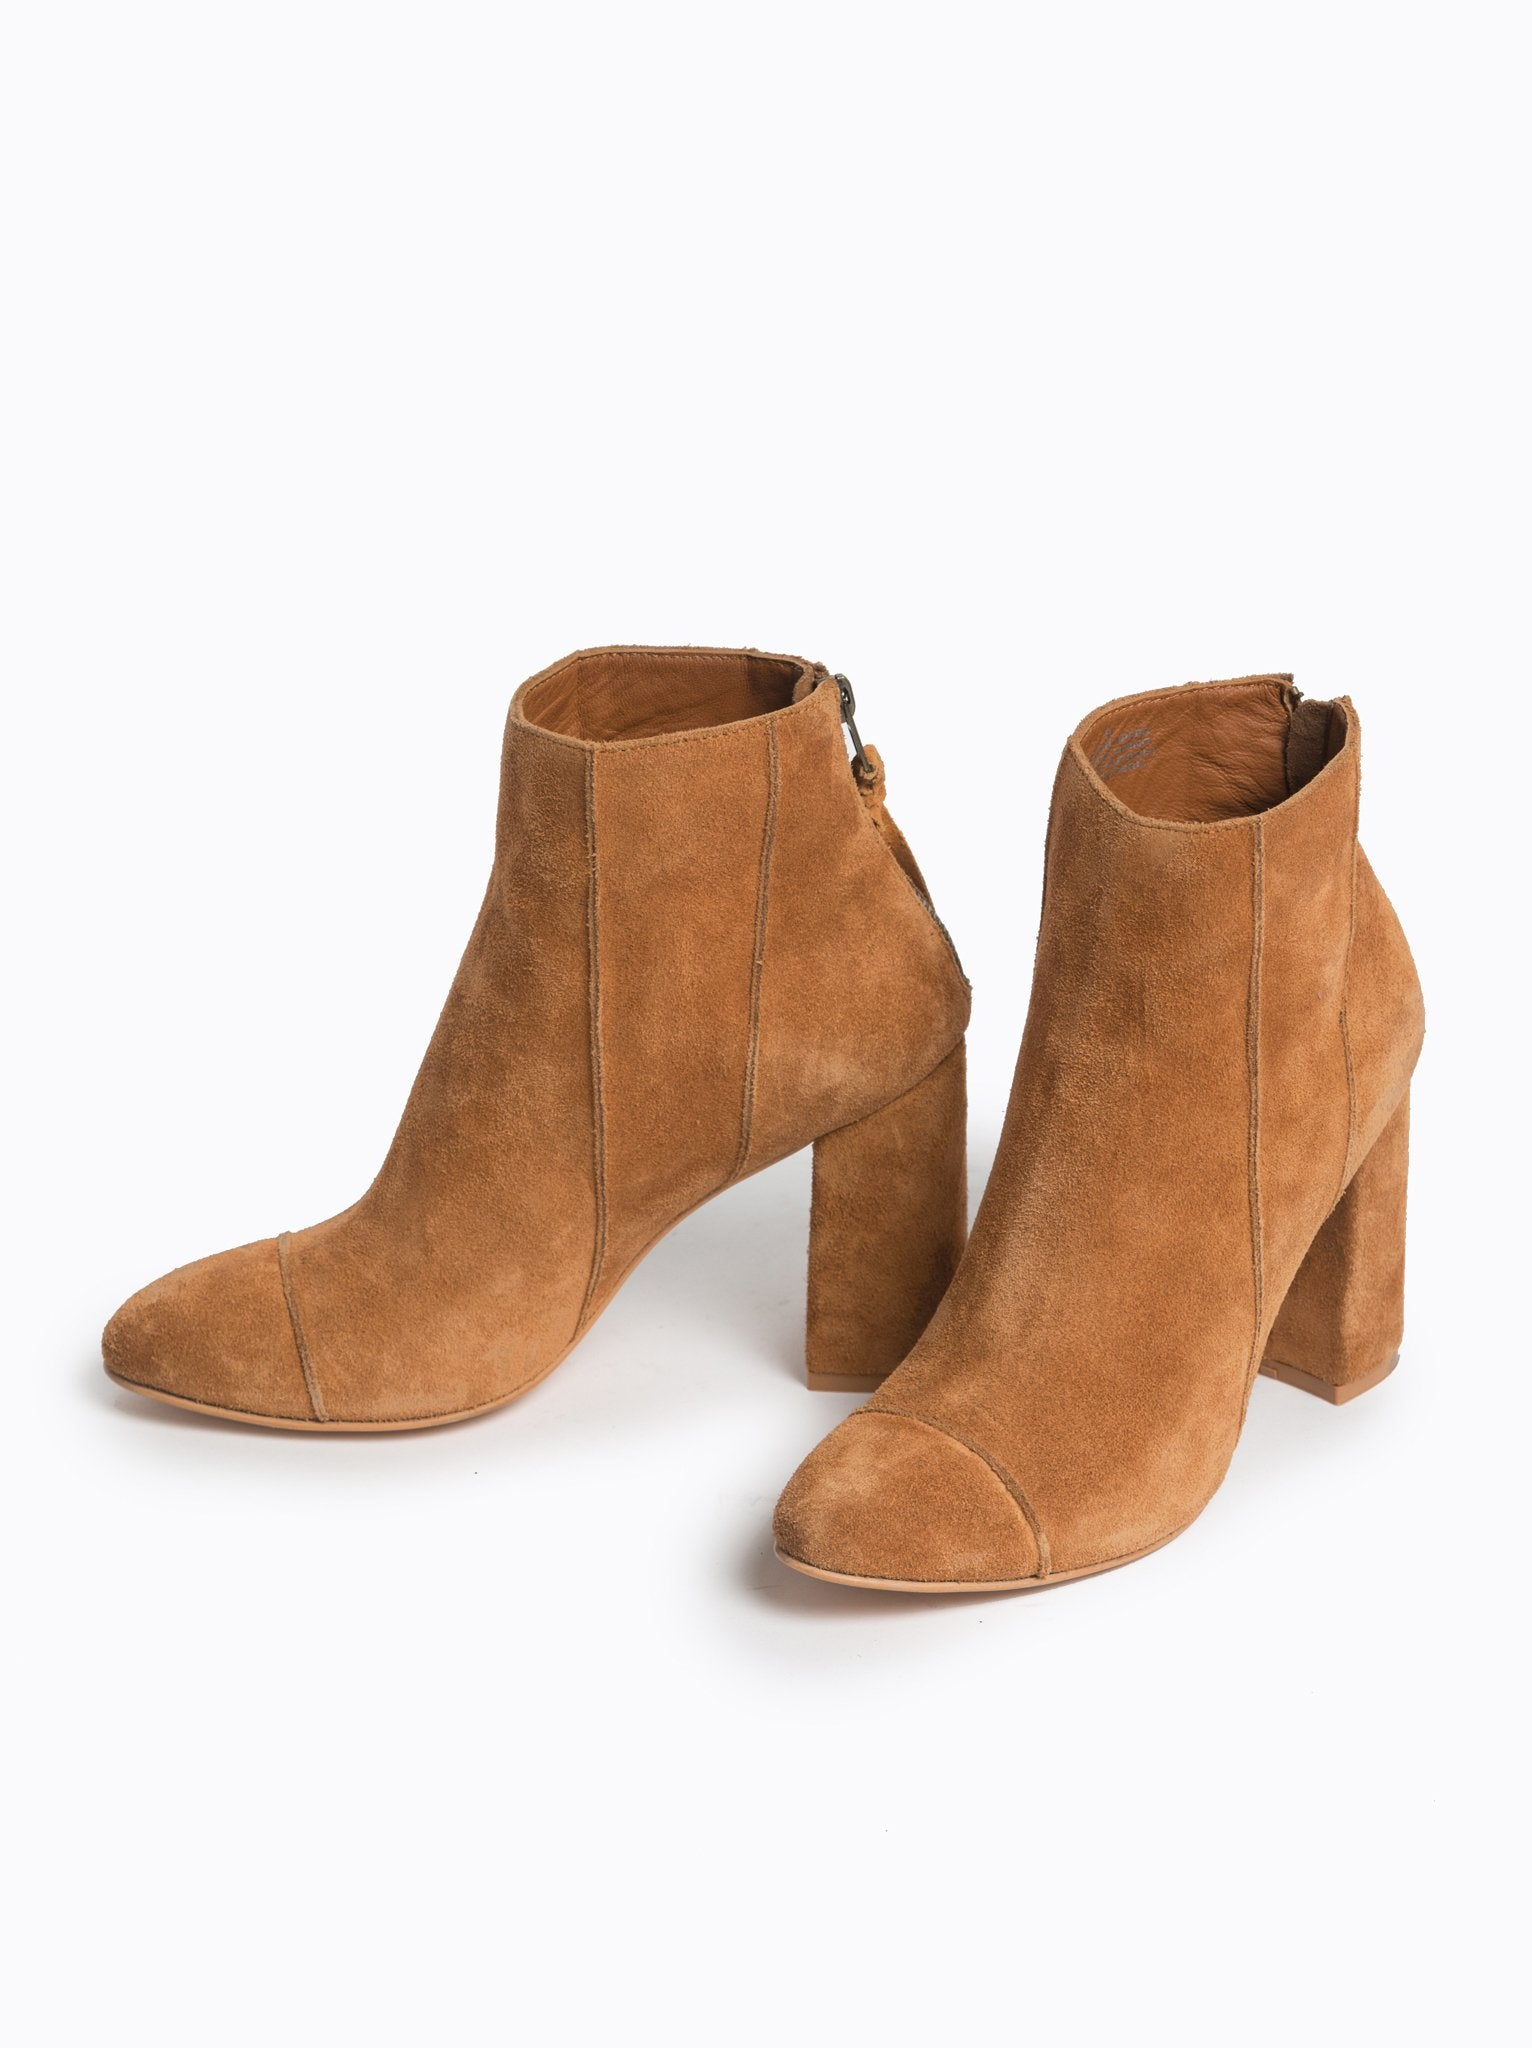 Perez 90mm Booties